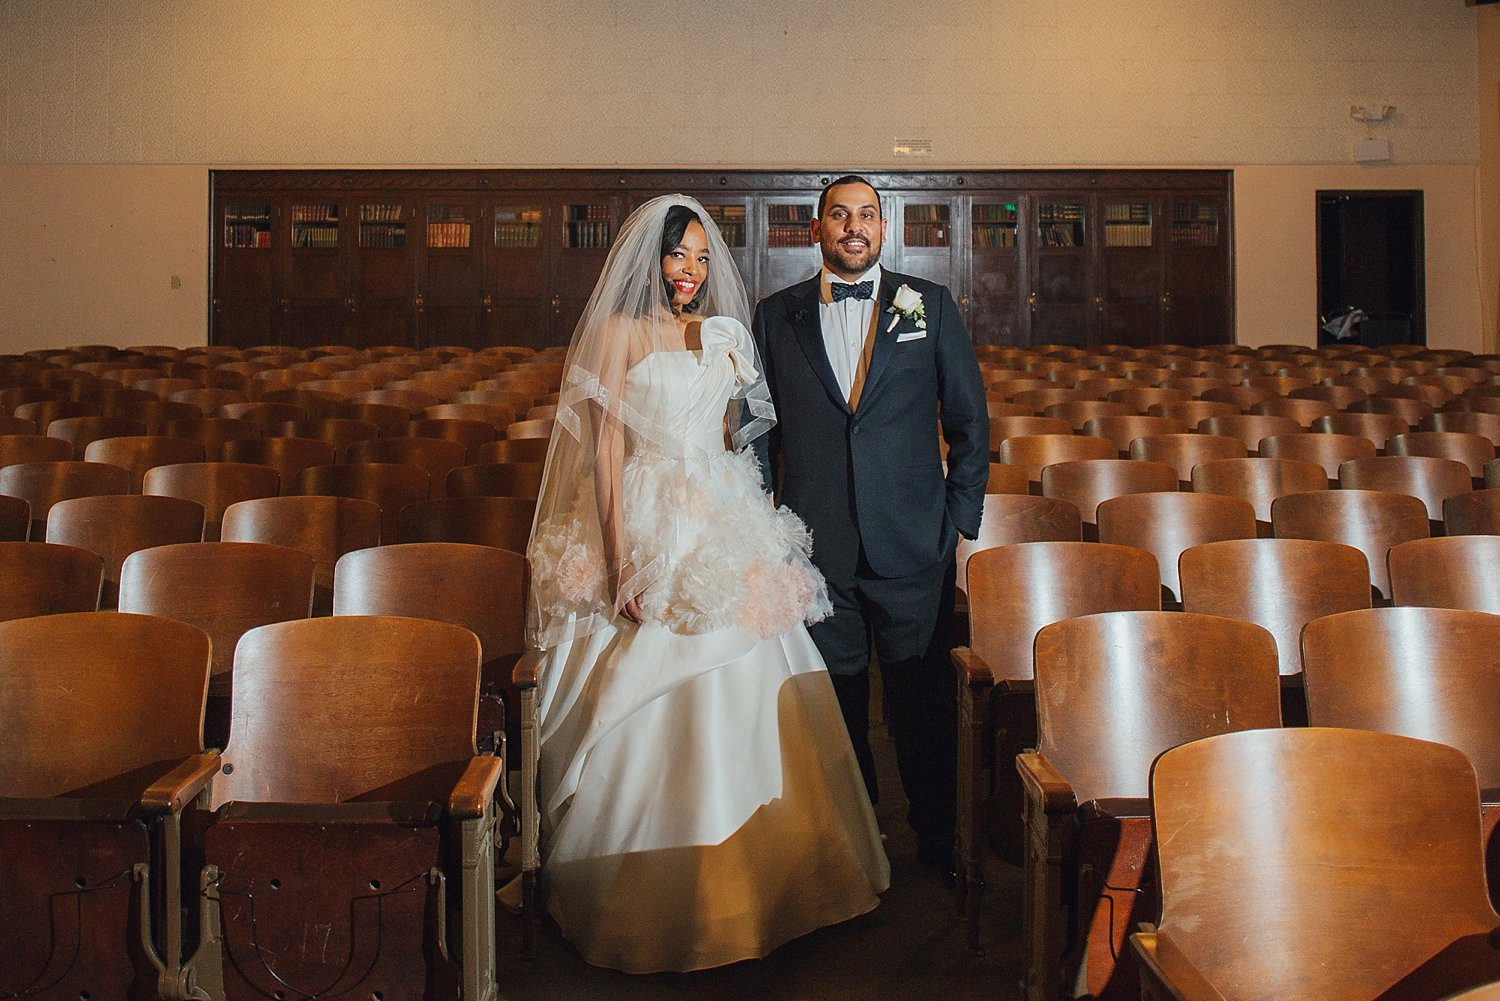 nyc-wedding-photography-nj-tri-state-cinematography-intothestory-by-moo-jae_0185.jpg